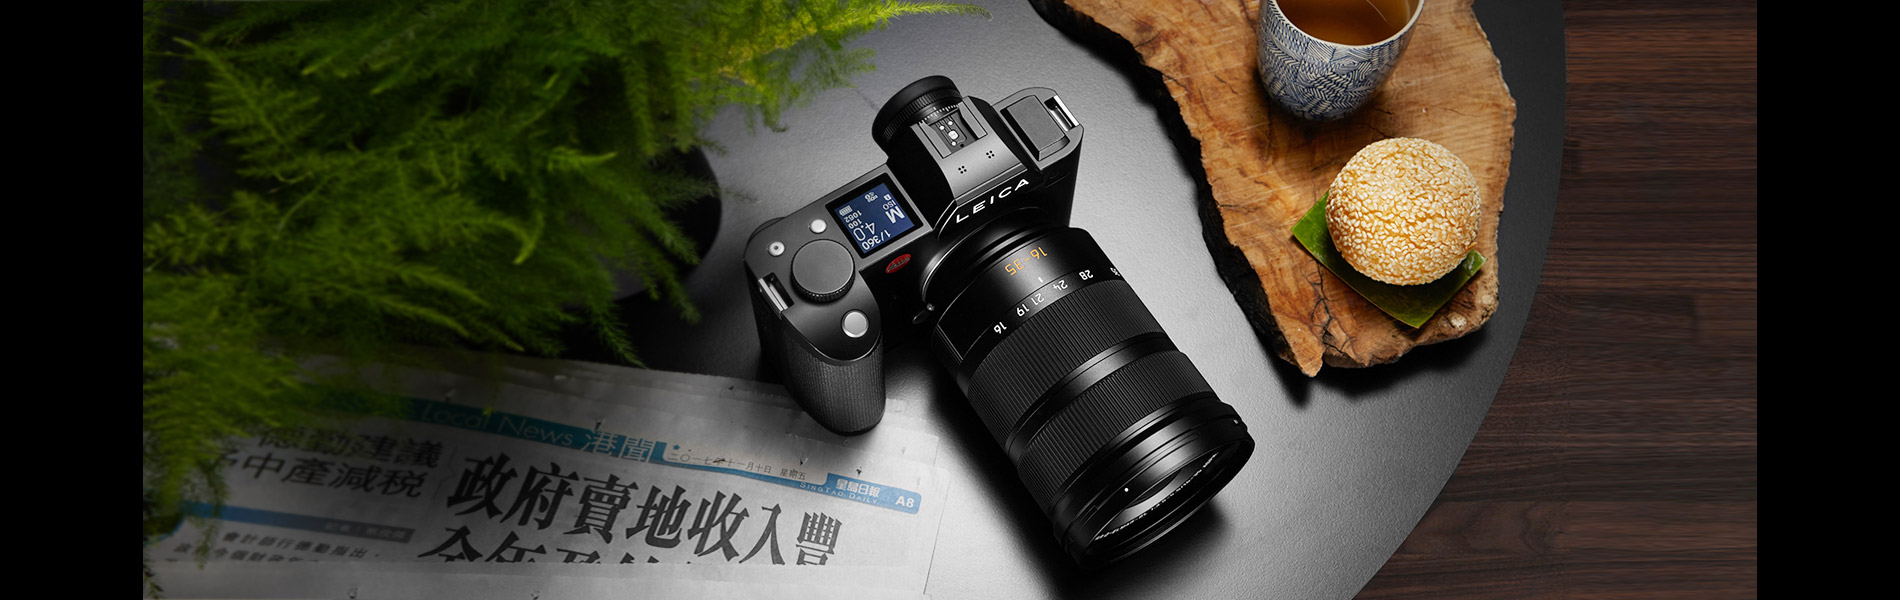 Leica SL. Trade-in promo